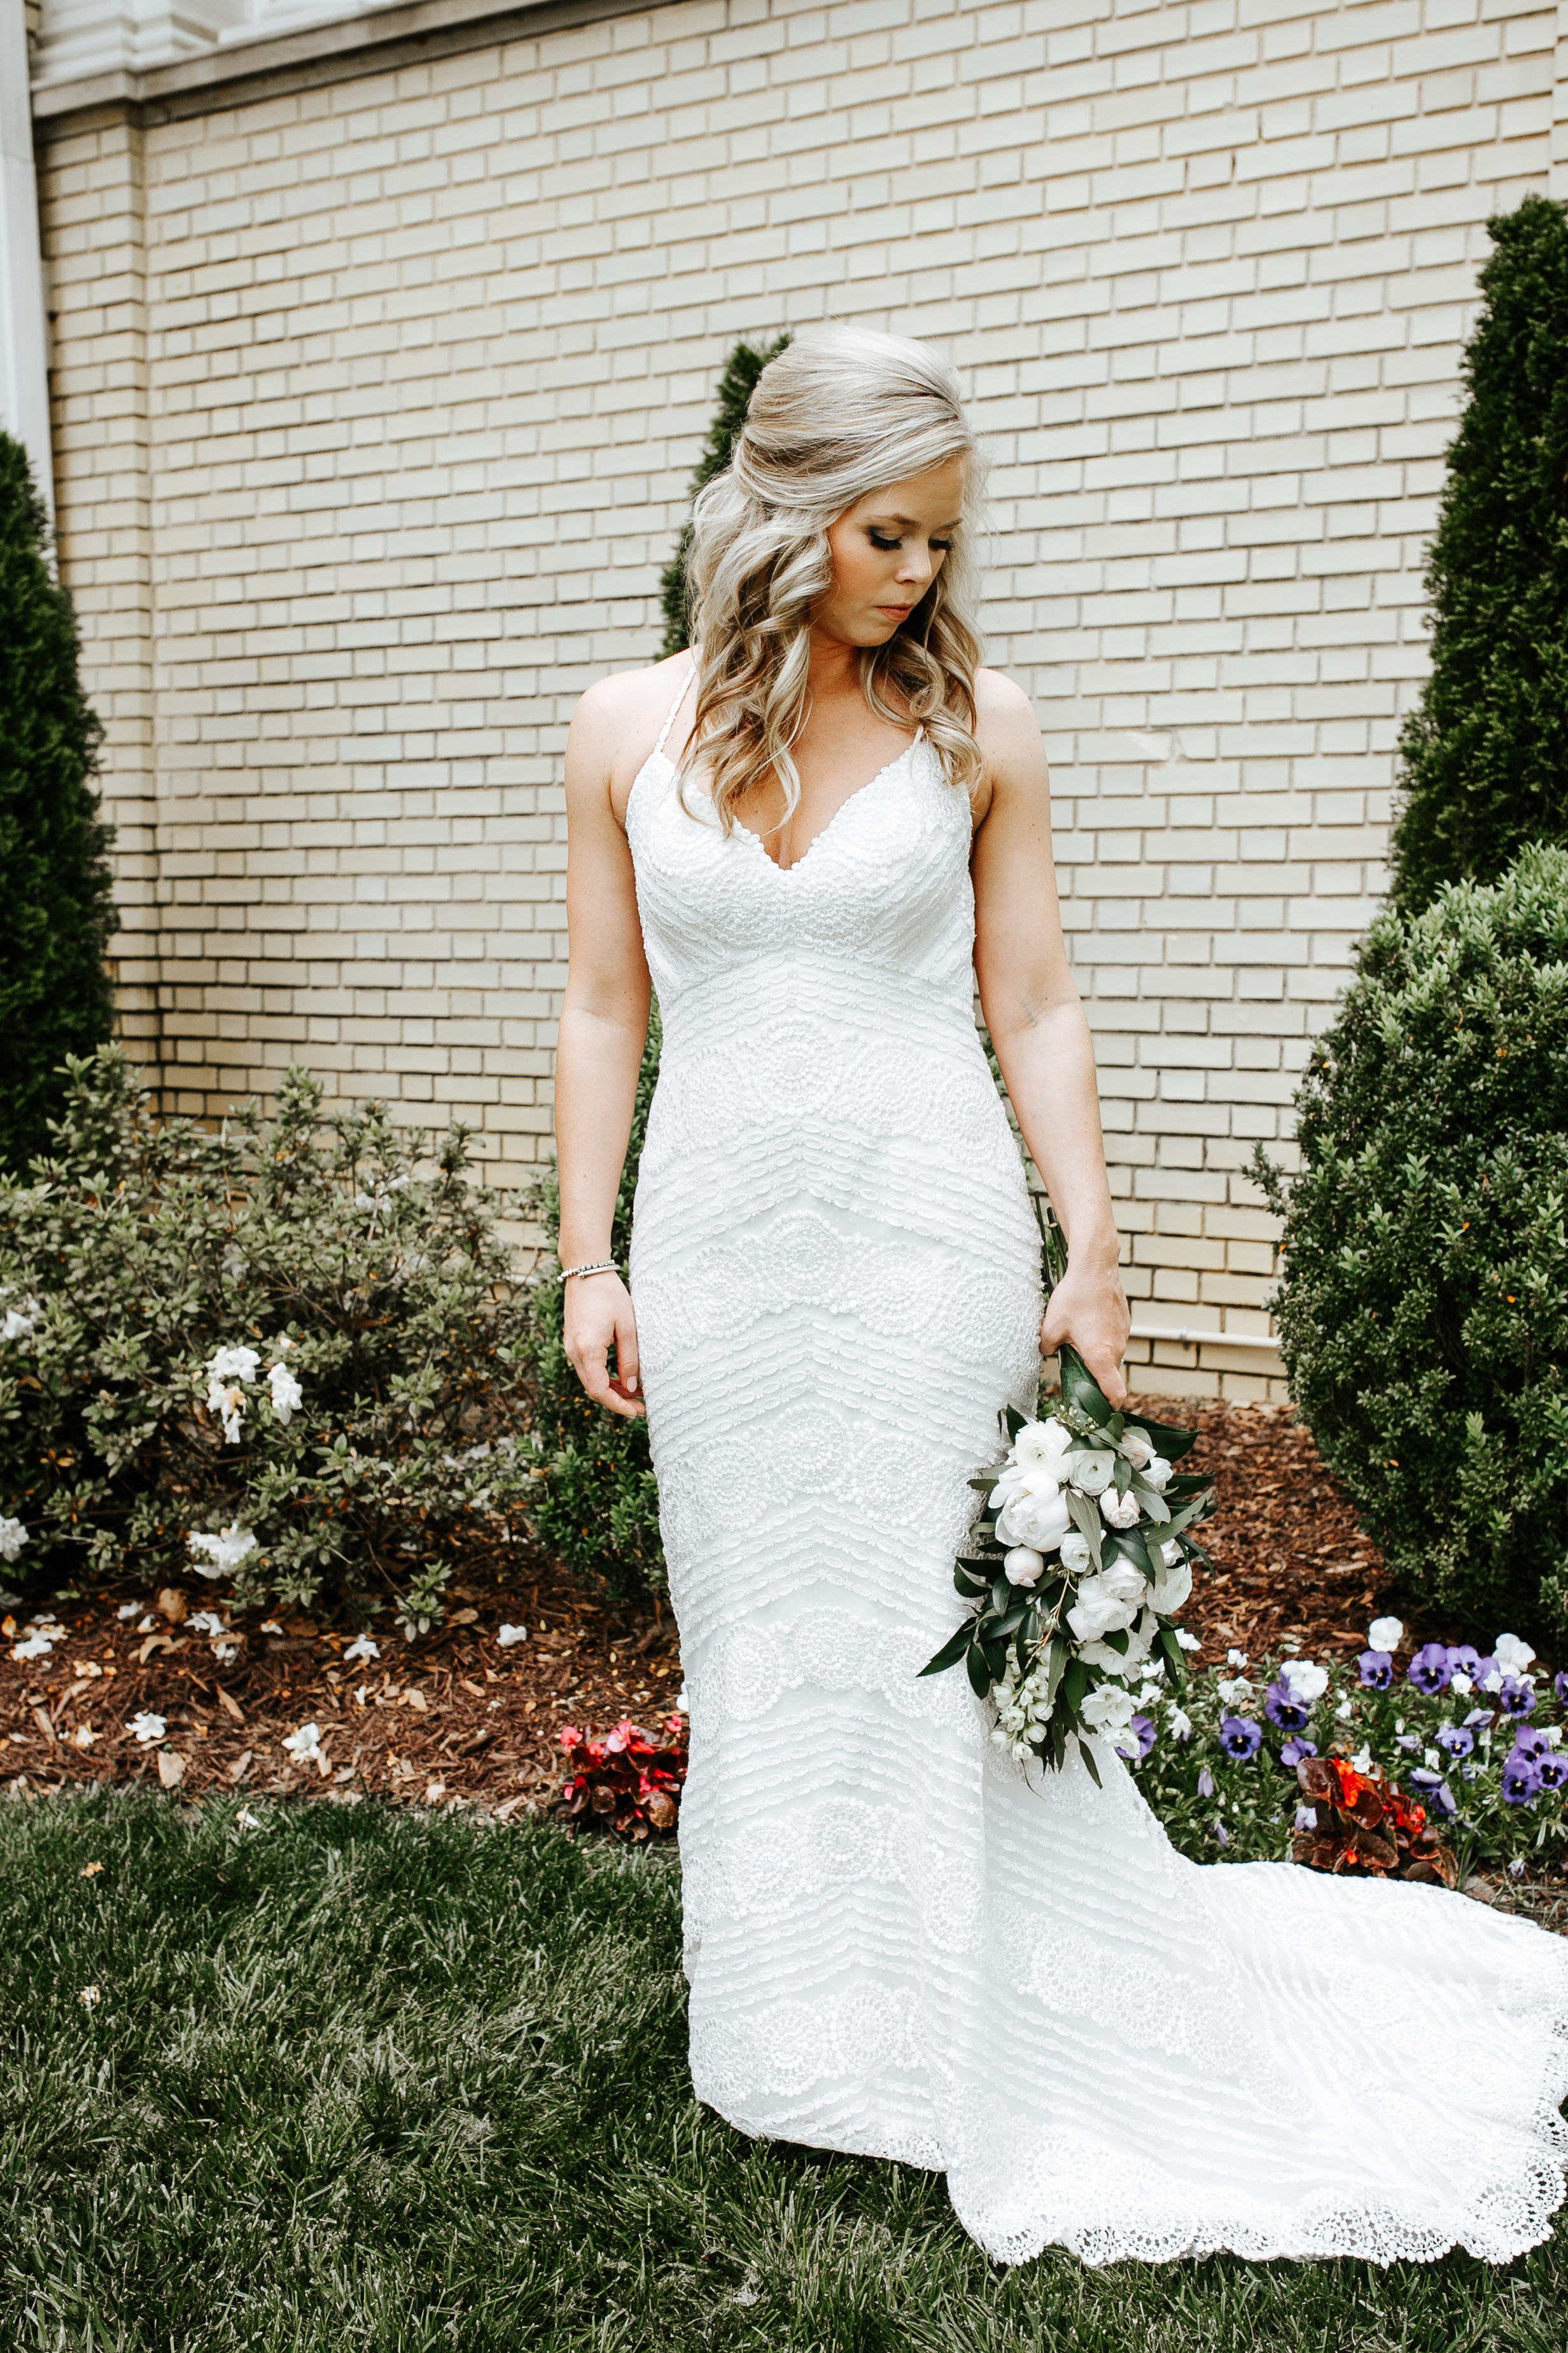 michellebrandonwedding-16.jpg